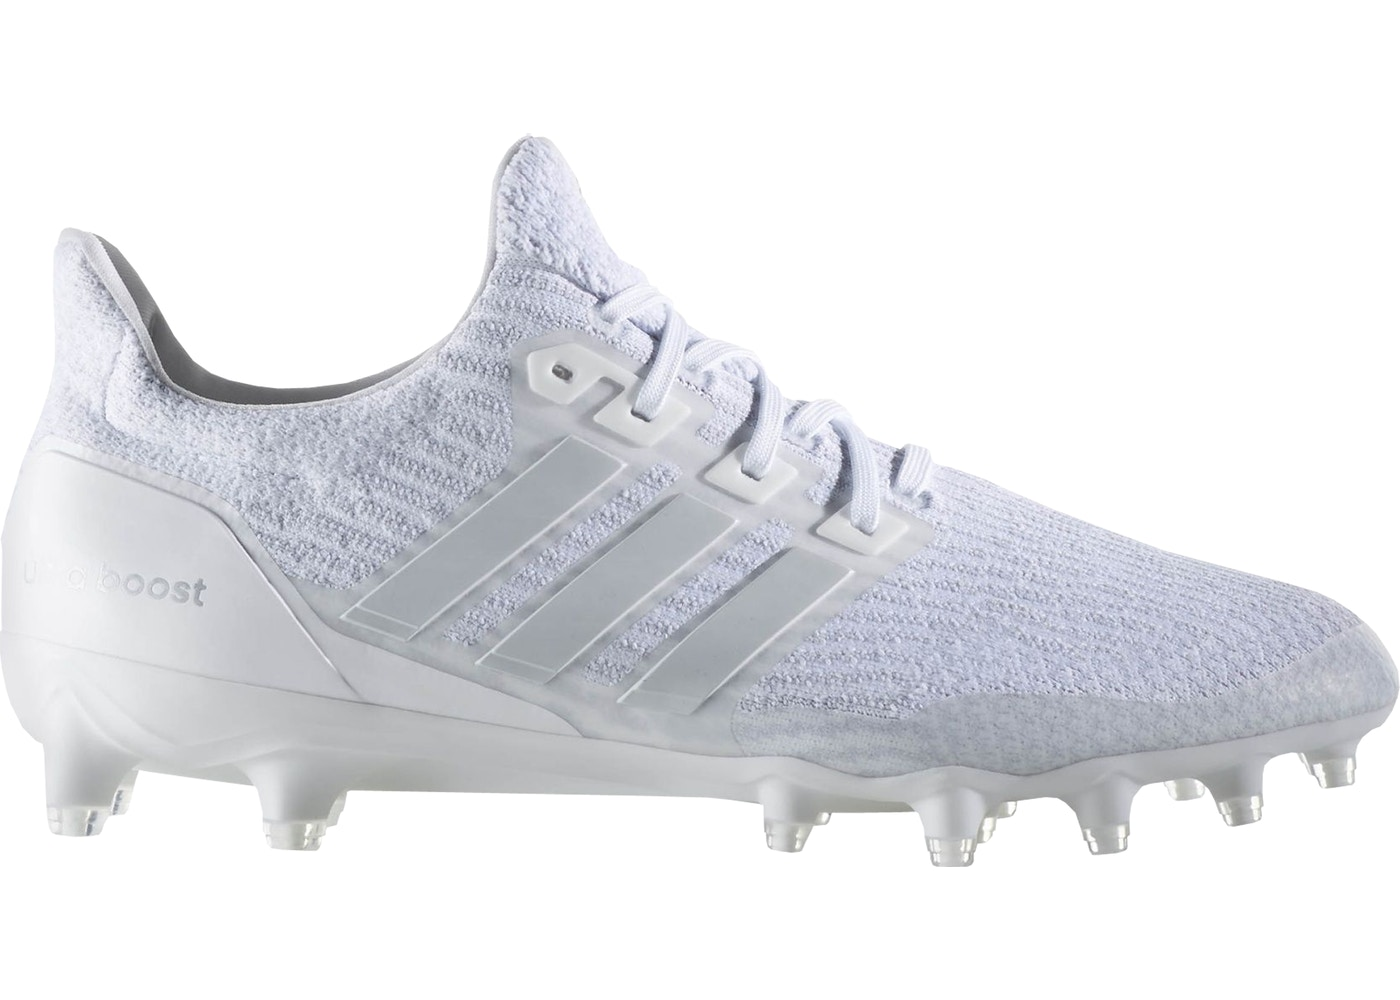 adidas ultra boost white cleats